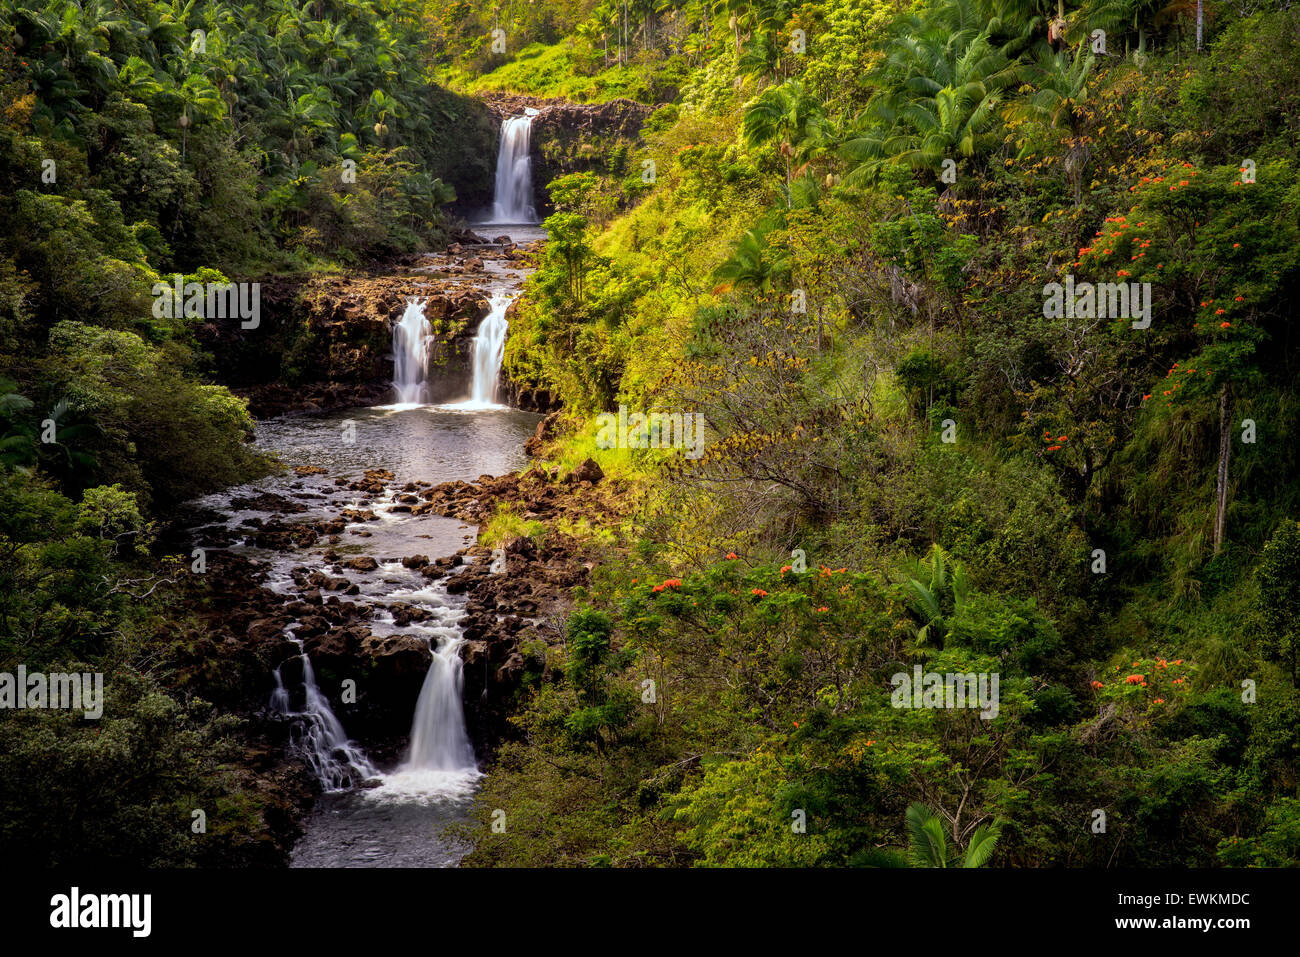 UmaUma Falls. Hawaii, The Big Island. - Stock Image